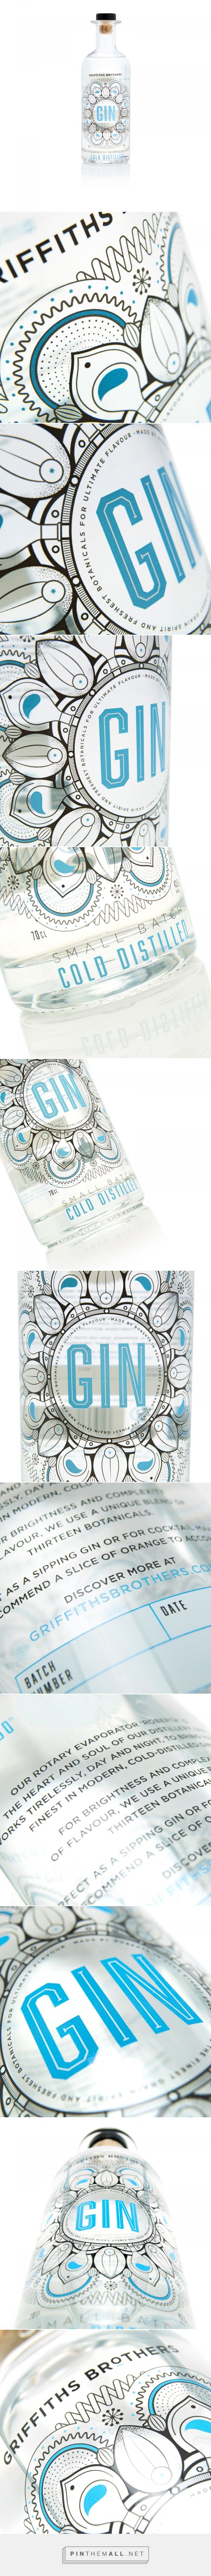 Griffiths Brothers Cold Distilled Gin packaging manufactured by Royston Labels - http://www.packagingoftheworld.com/2018/01/griffiths-brothers-cold-distilled-gin.html